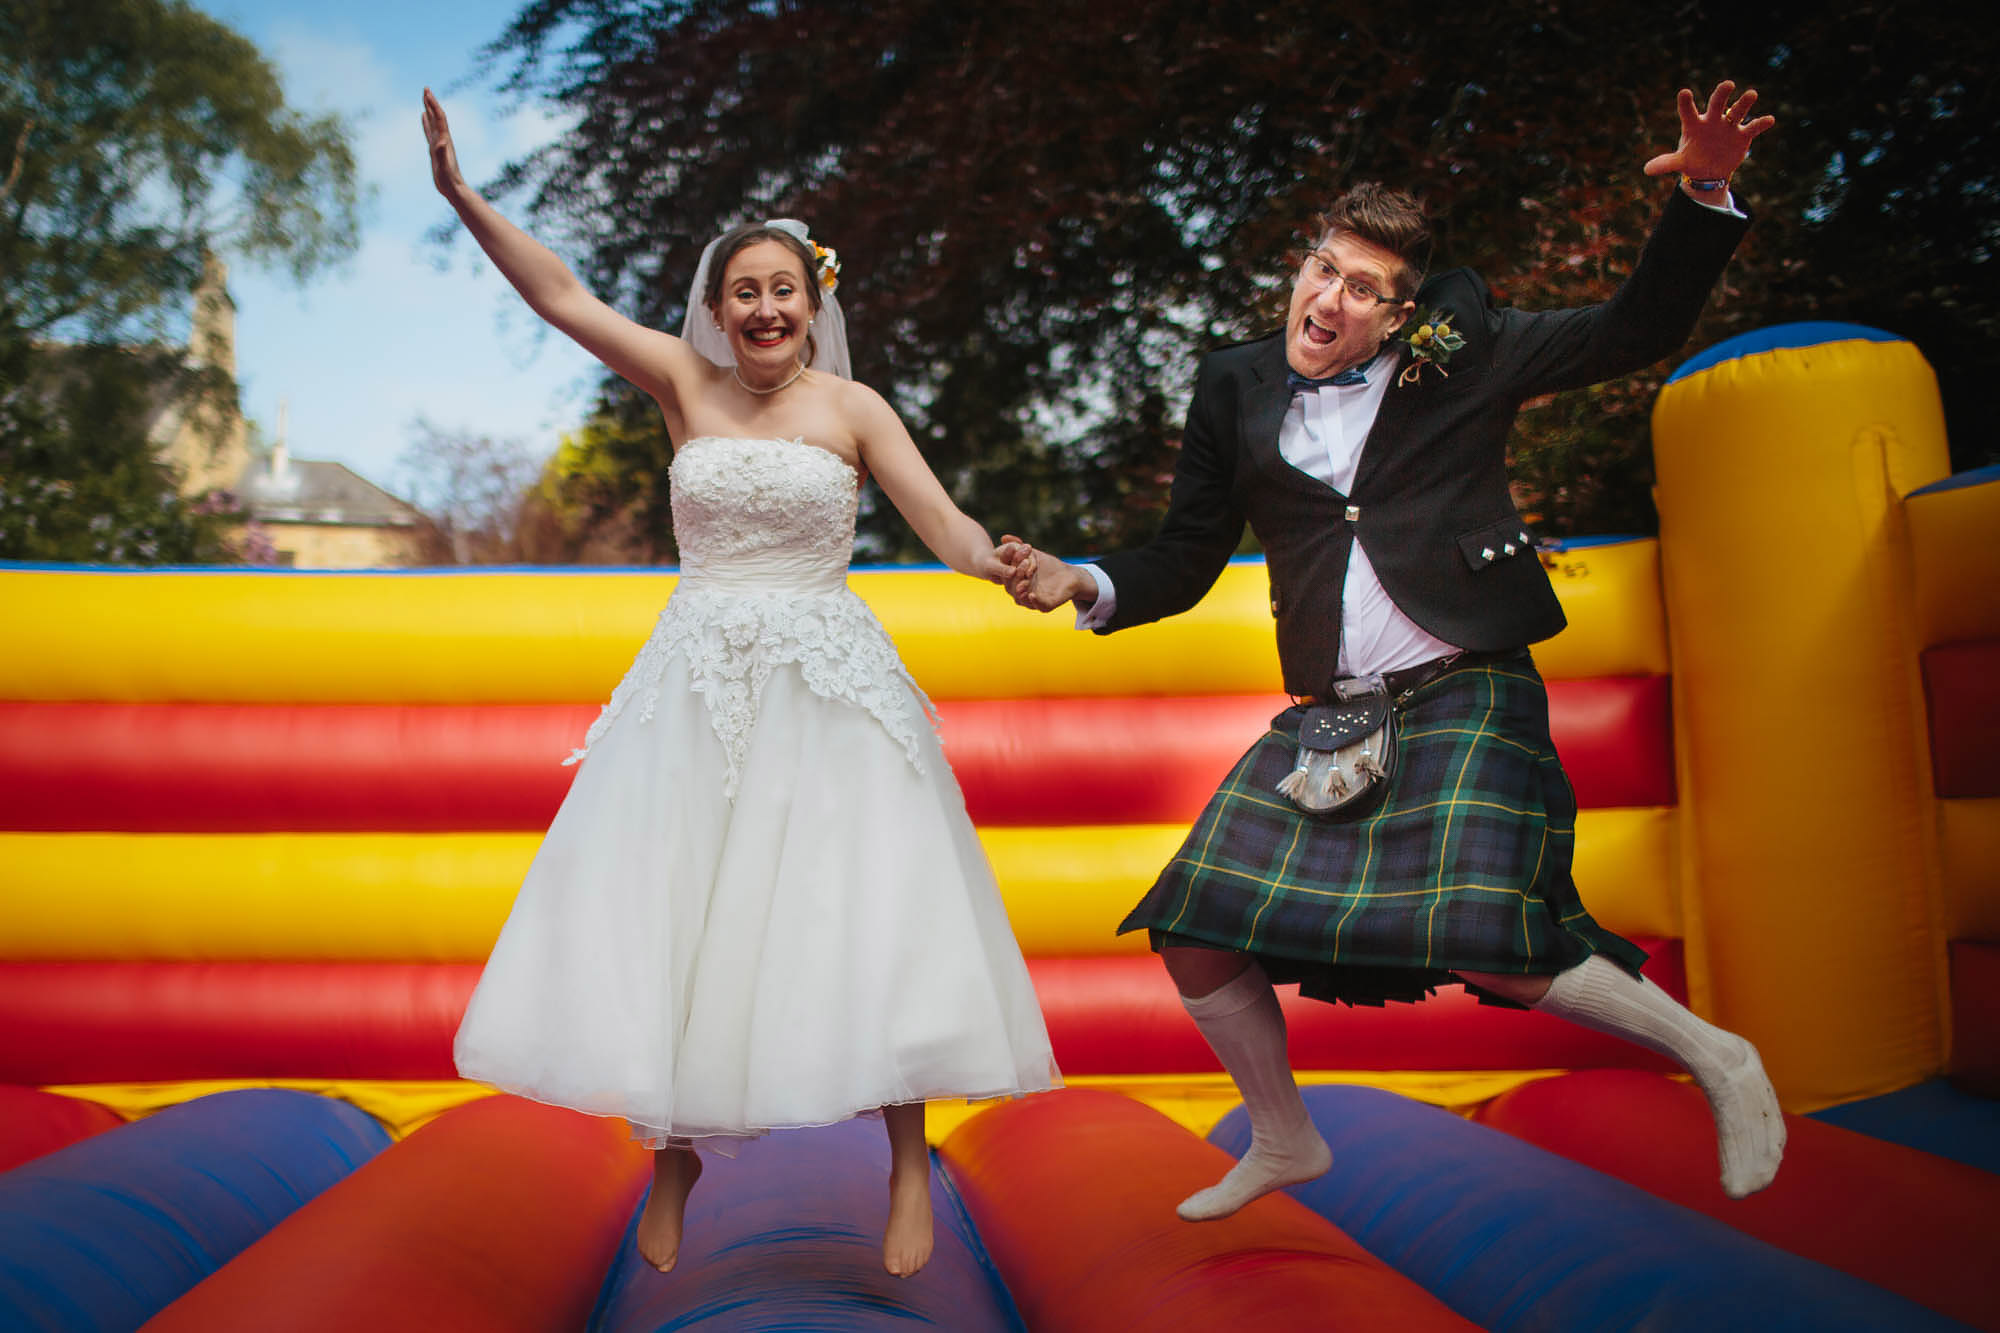 Leeds Yorkshire Wedding Photographer Bouncy Castle Jump